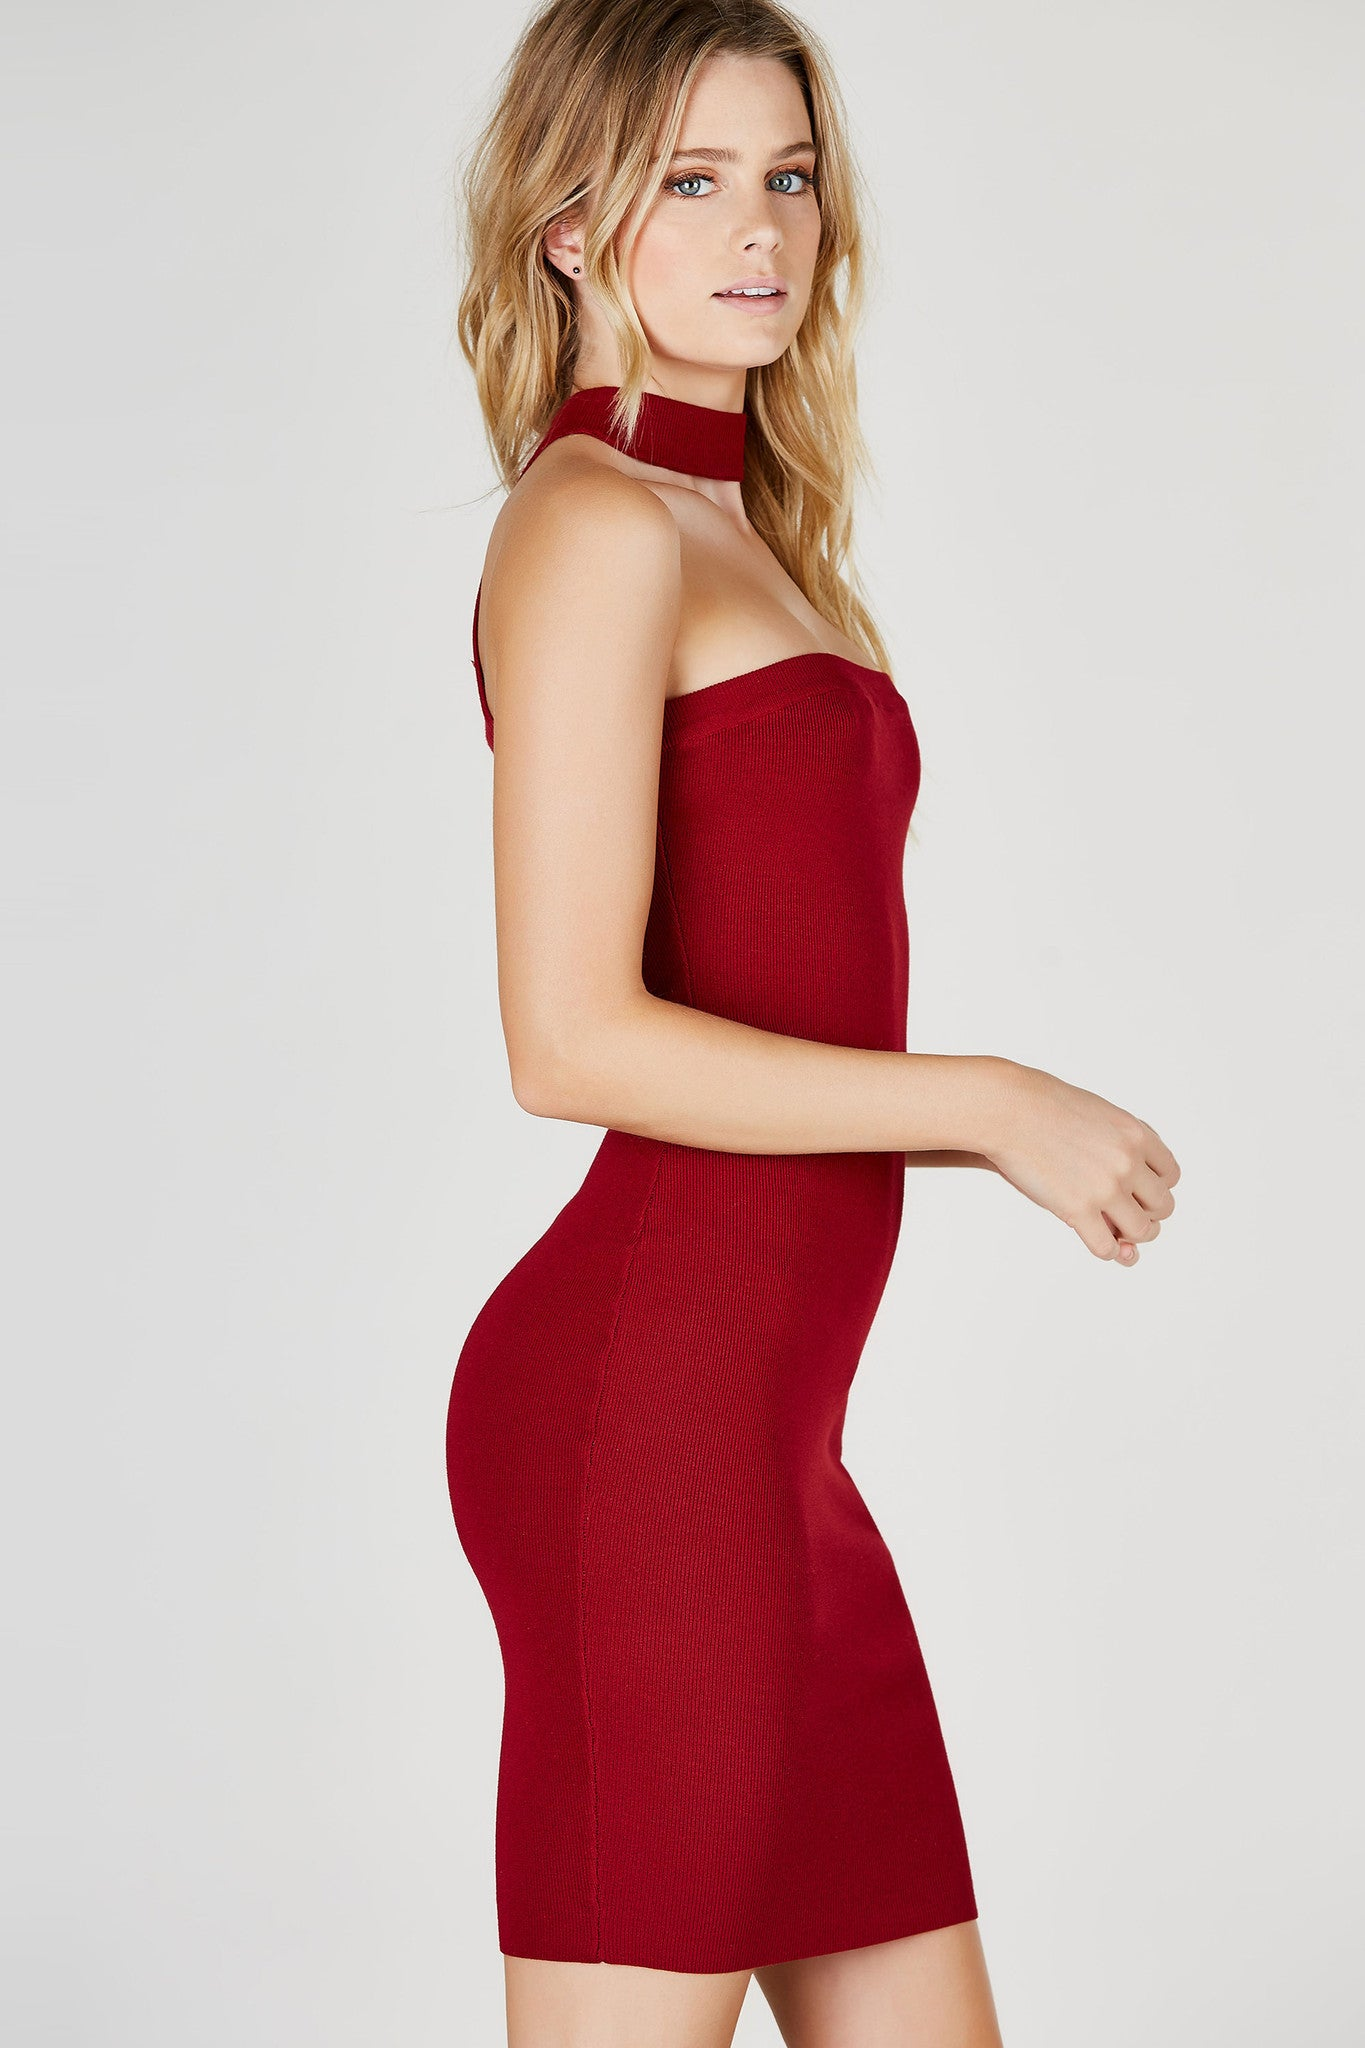 A sexy midi tube dress with a sassy choker neckline attached from the back. Stretchy material provides a flattering body-hugging fit. Great for date nights or special events. Pair with ankle strap pumps and a faux leather jacket!